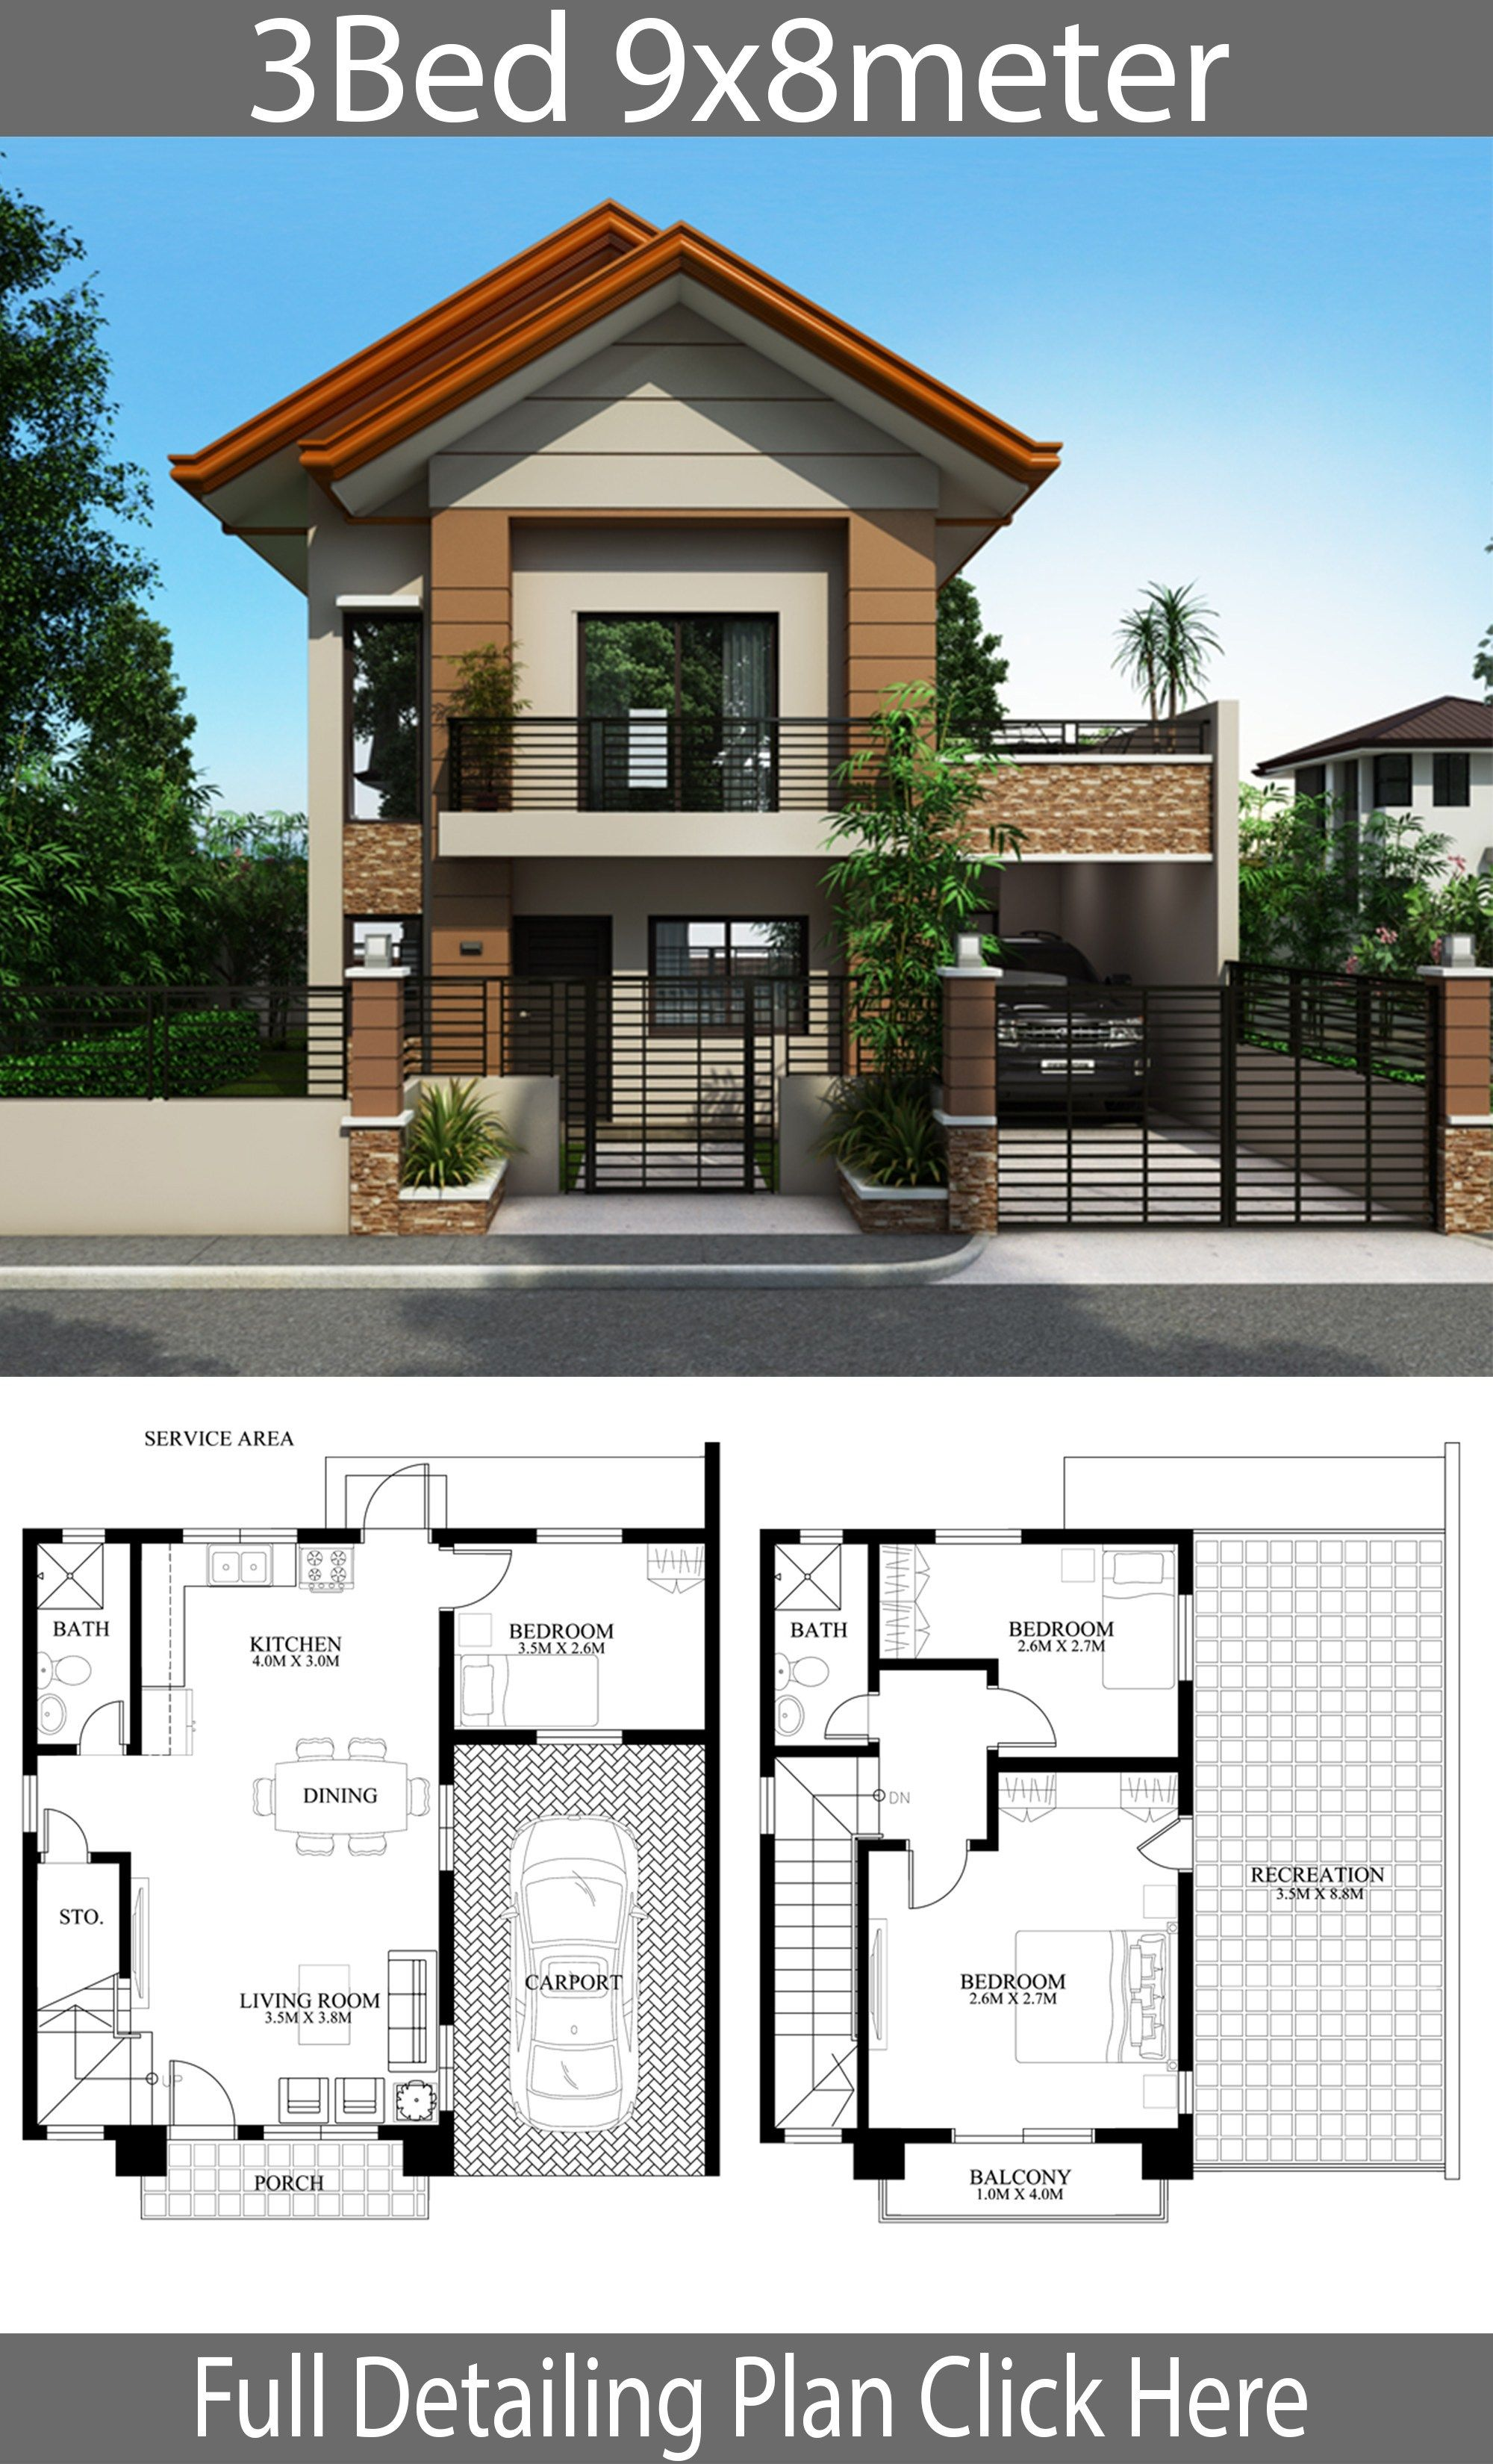 Home Design Plan 9x8m With 3 Bedrooms Home Design With Plan Philippines House Design Small House Design Philippines 2 Storey House Design